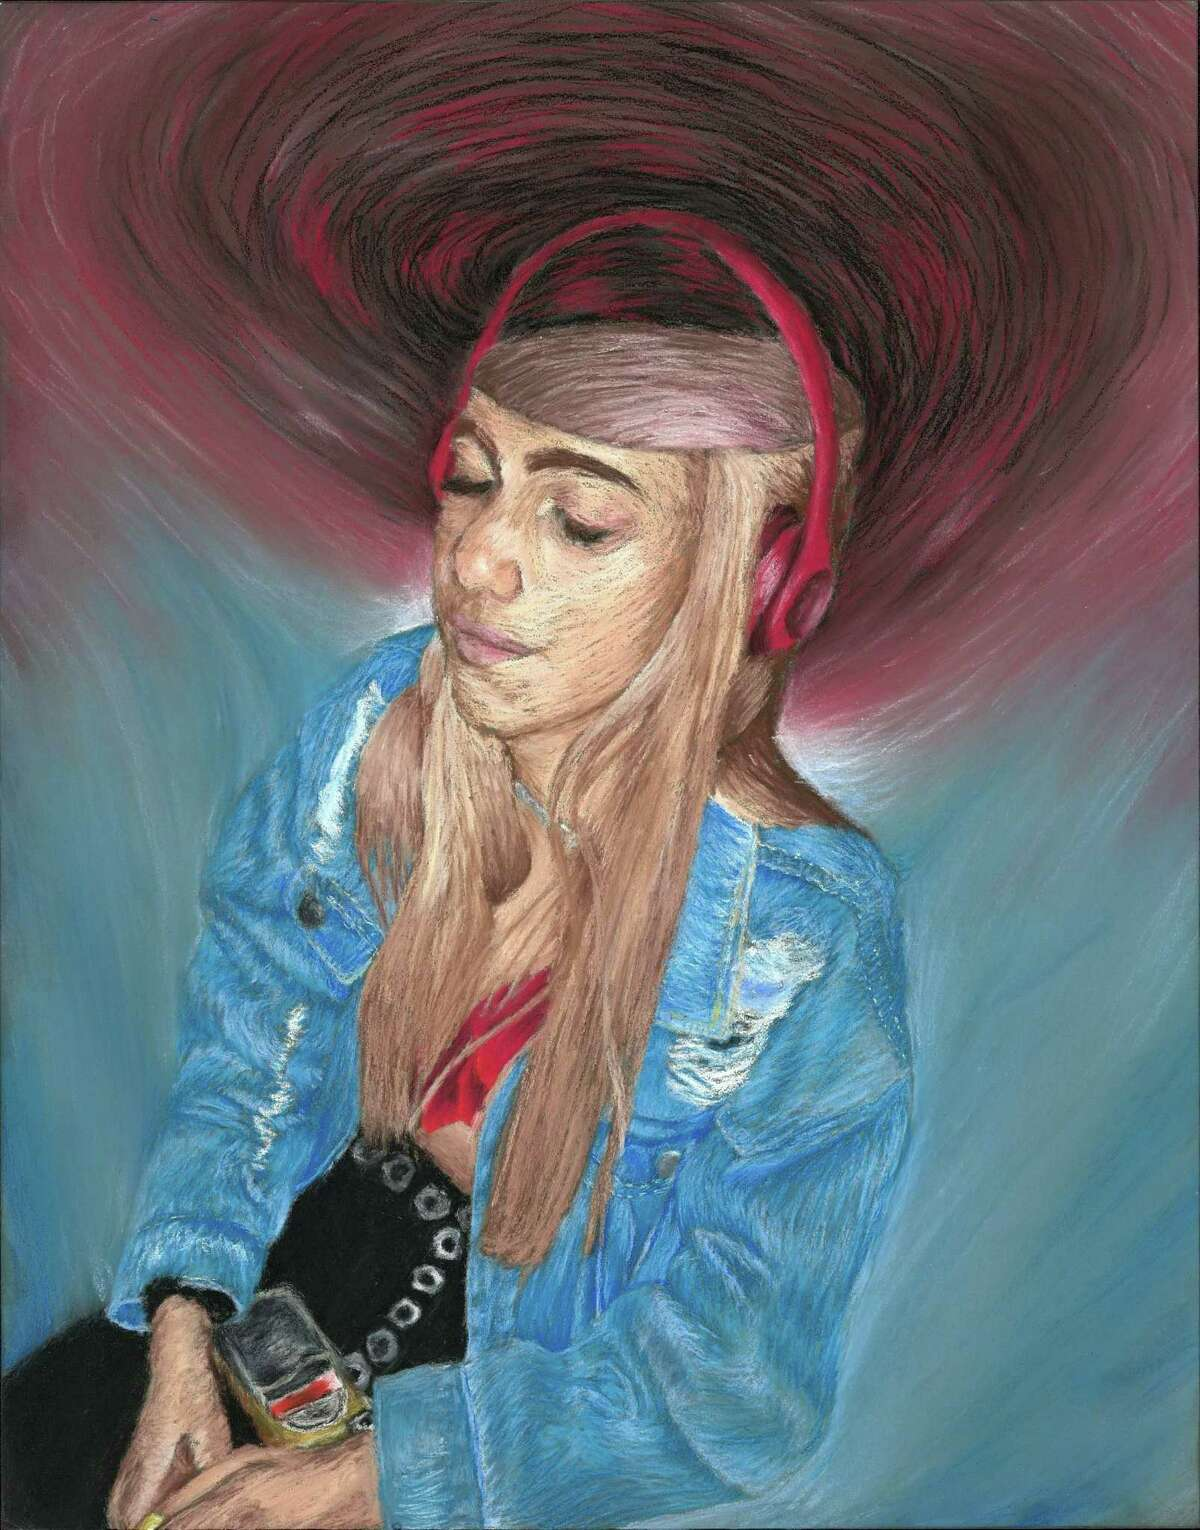 """New Canaan High School senior, Devin Findlay, has a piece of art in the school's, """"first virtual senior art show,"""" """"NCHS 2020 Vision,"""" titled: """"Surround Sound."""" The show can be seen online until June 30."""